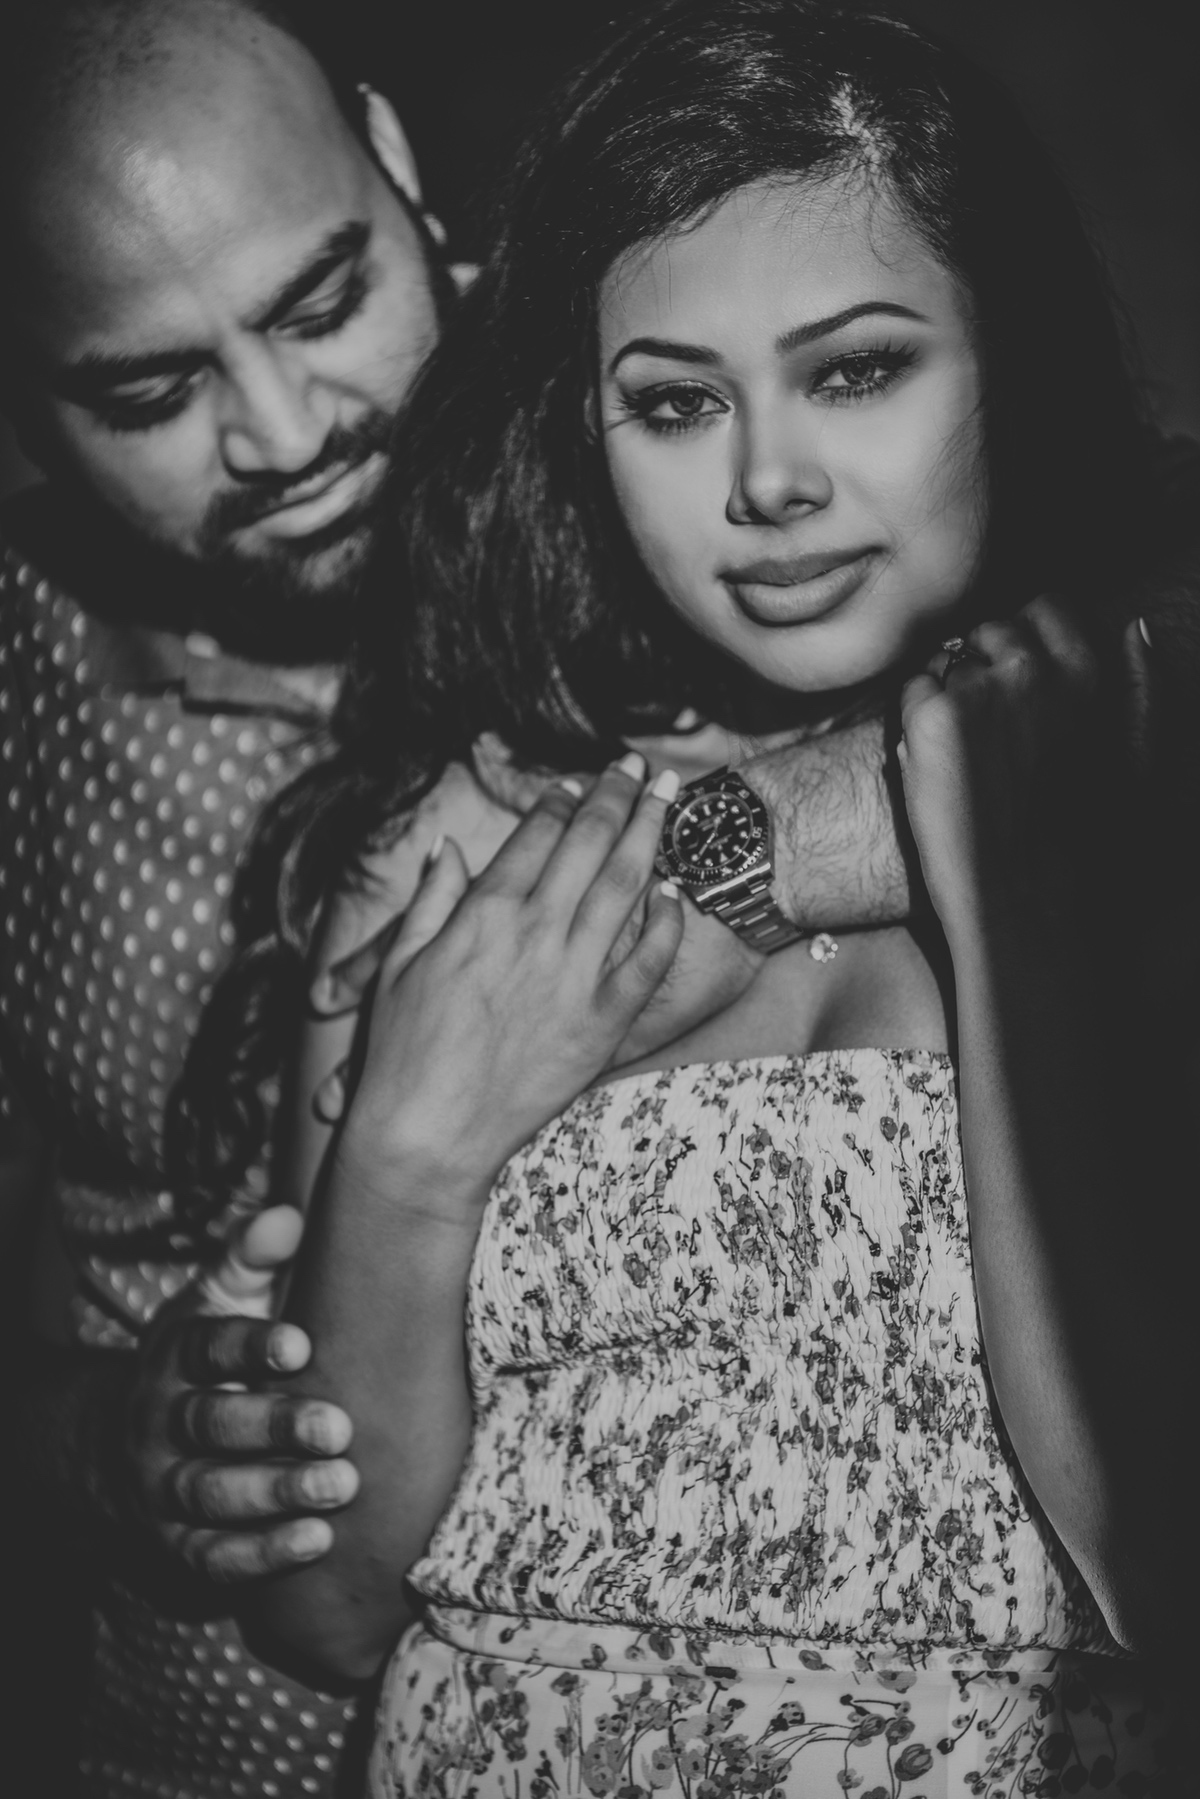 Le Cape Weddings - Engagement Session in Chicago - Brinjal-11.jpg